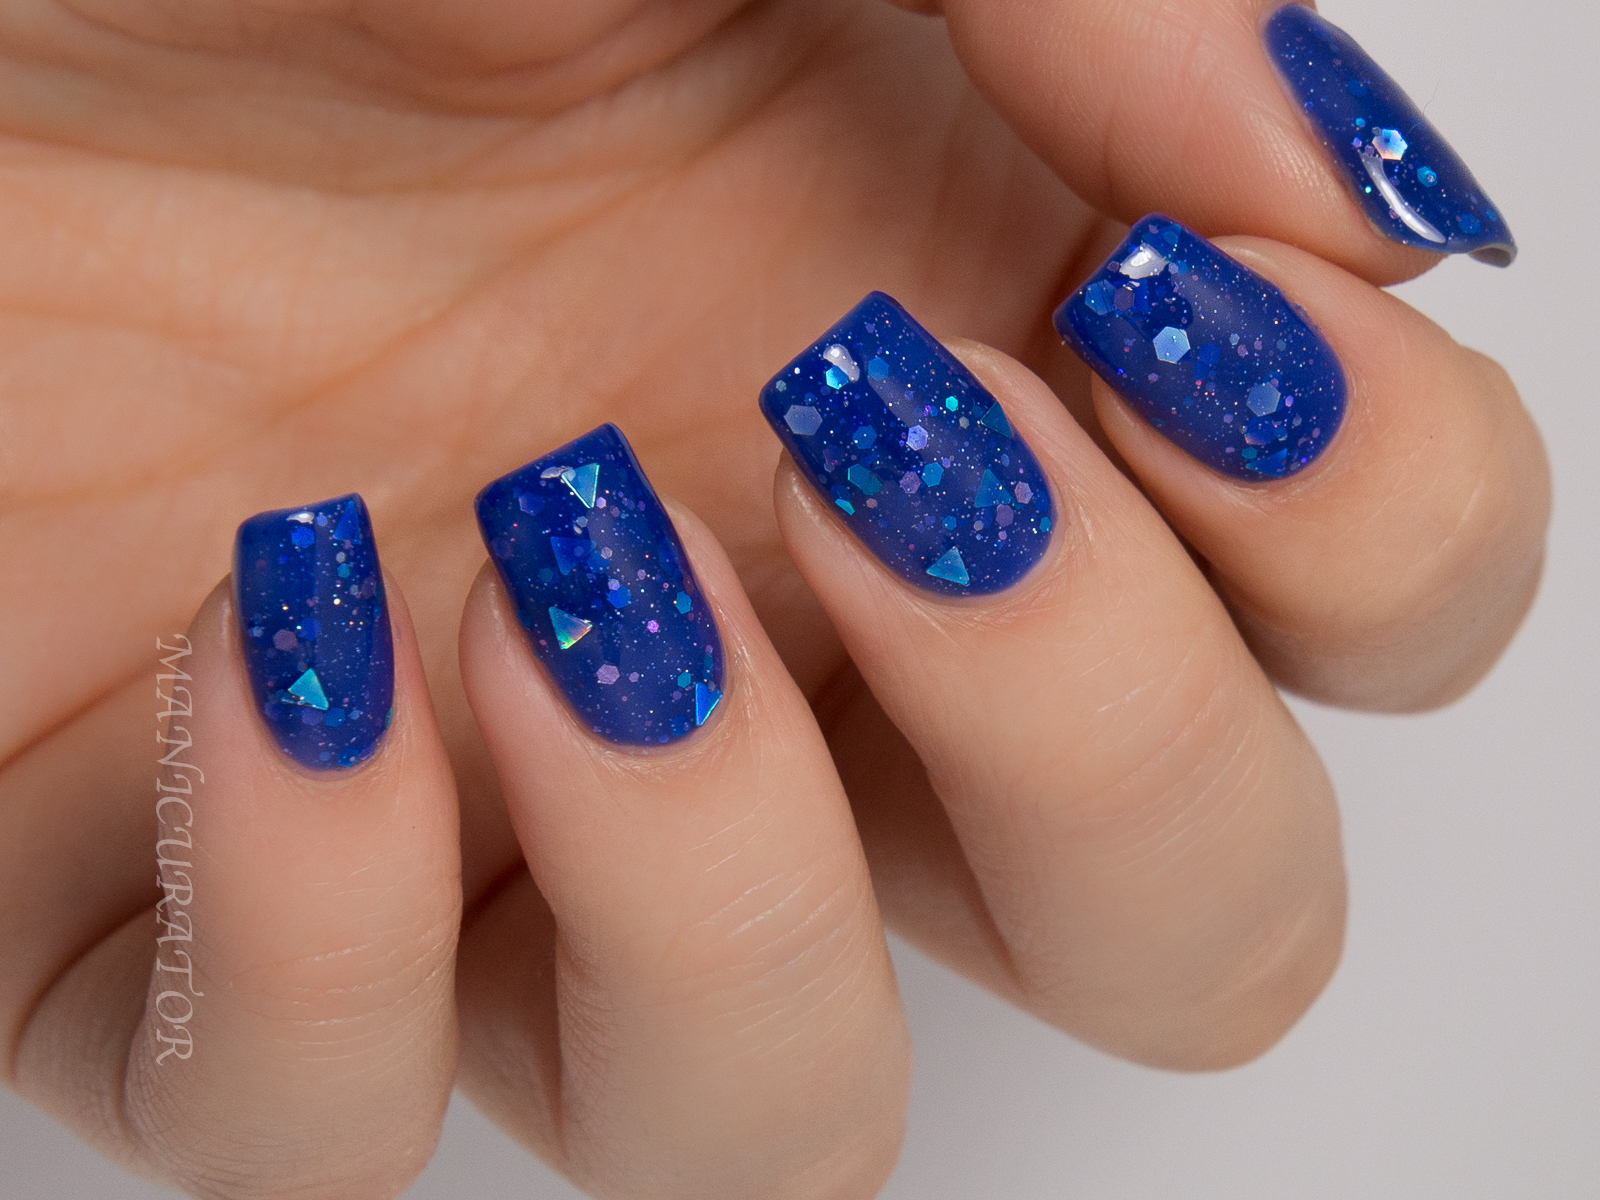 KBShimmer-Winter-2014-Fallen-Angle-Swatch